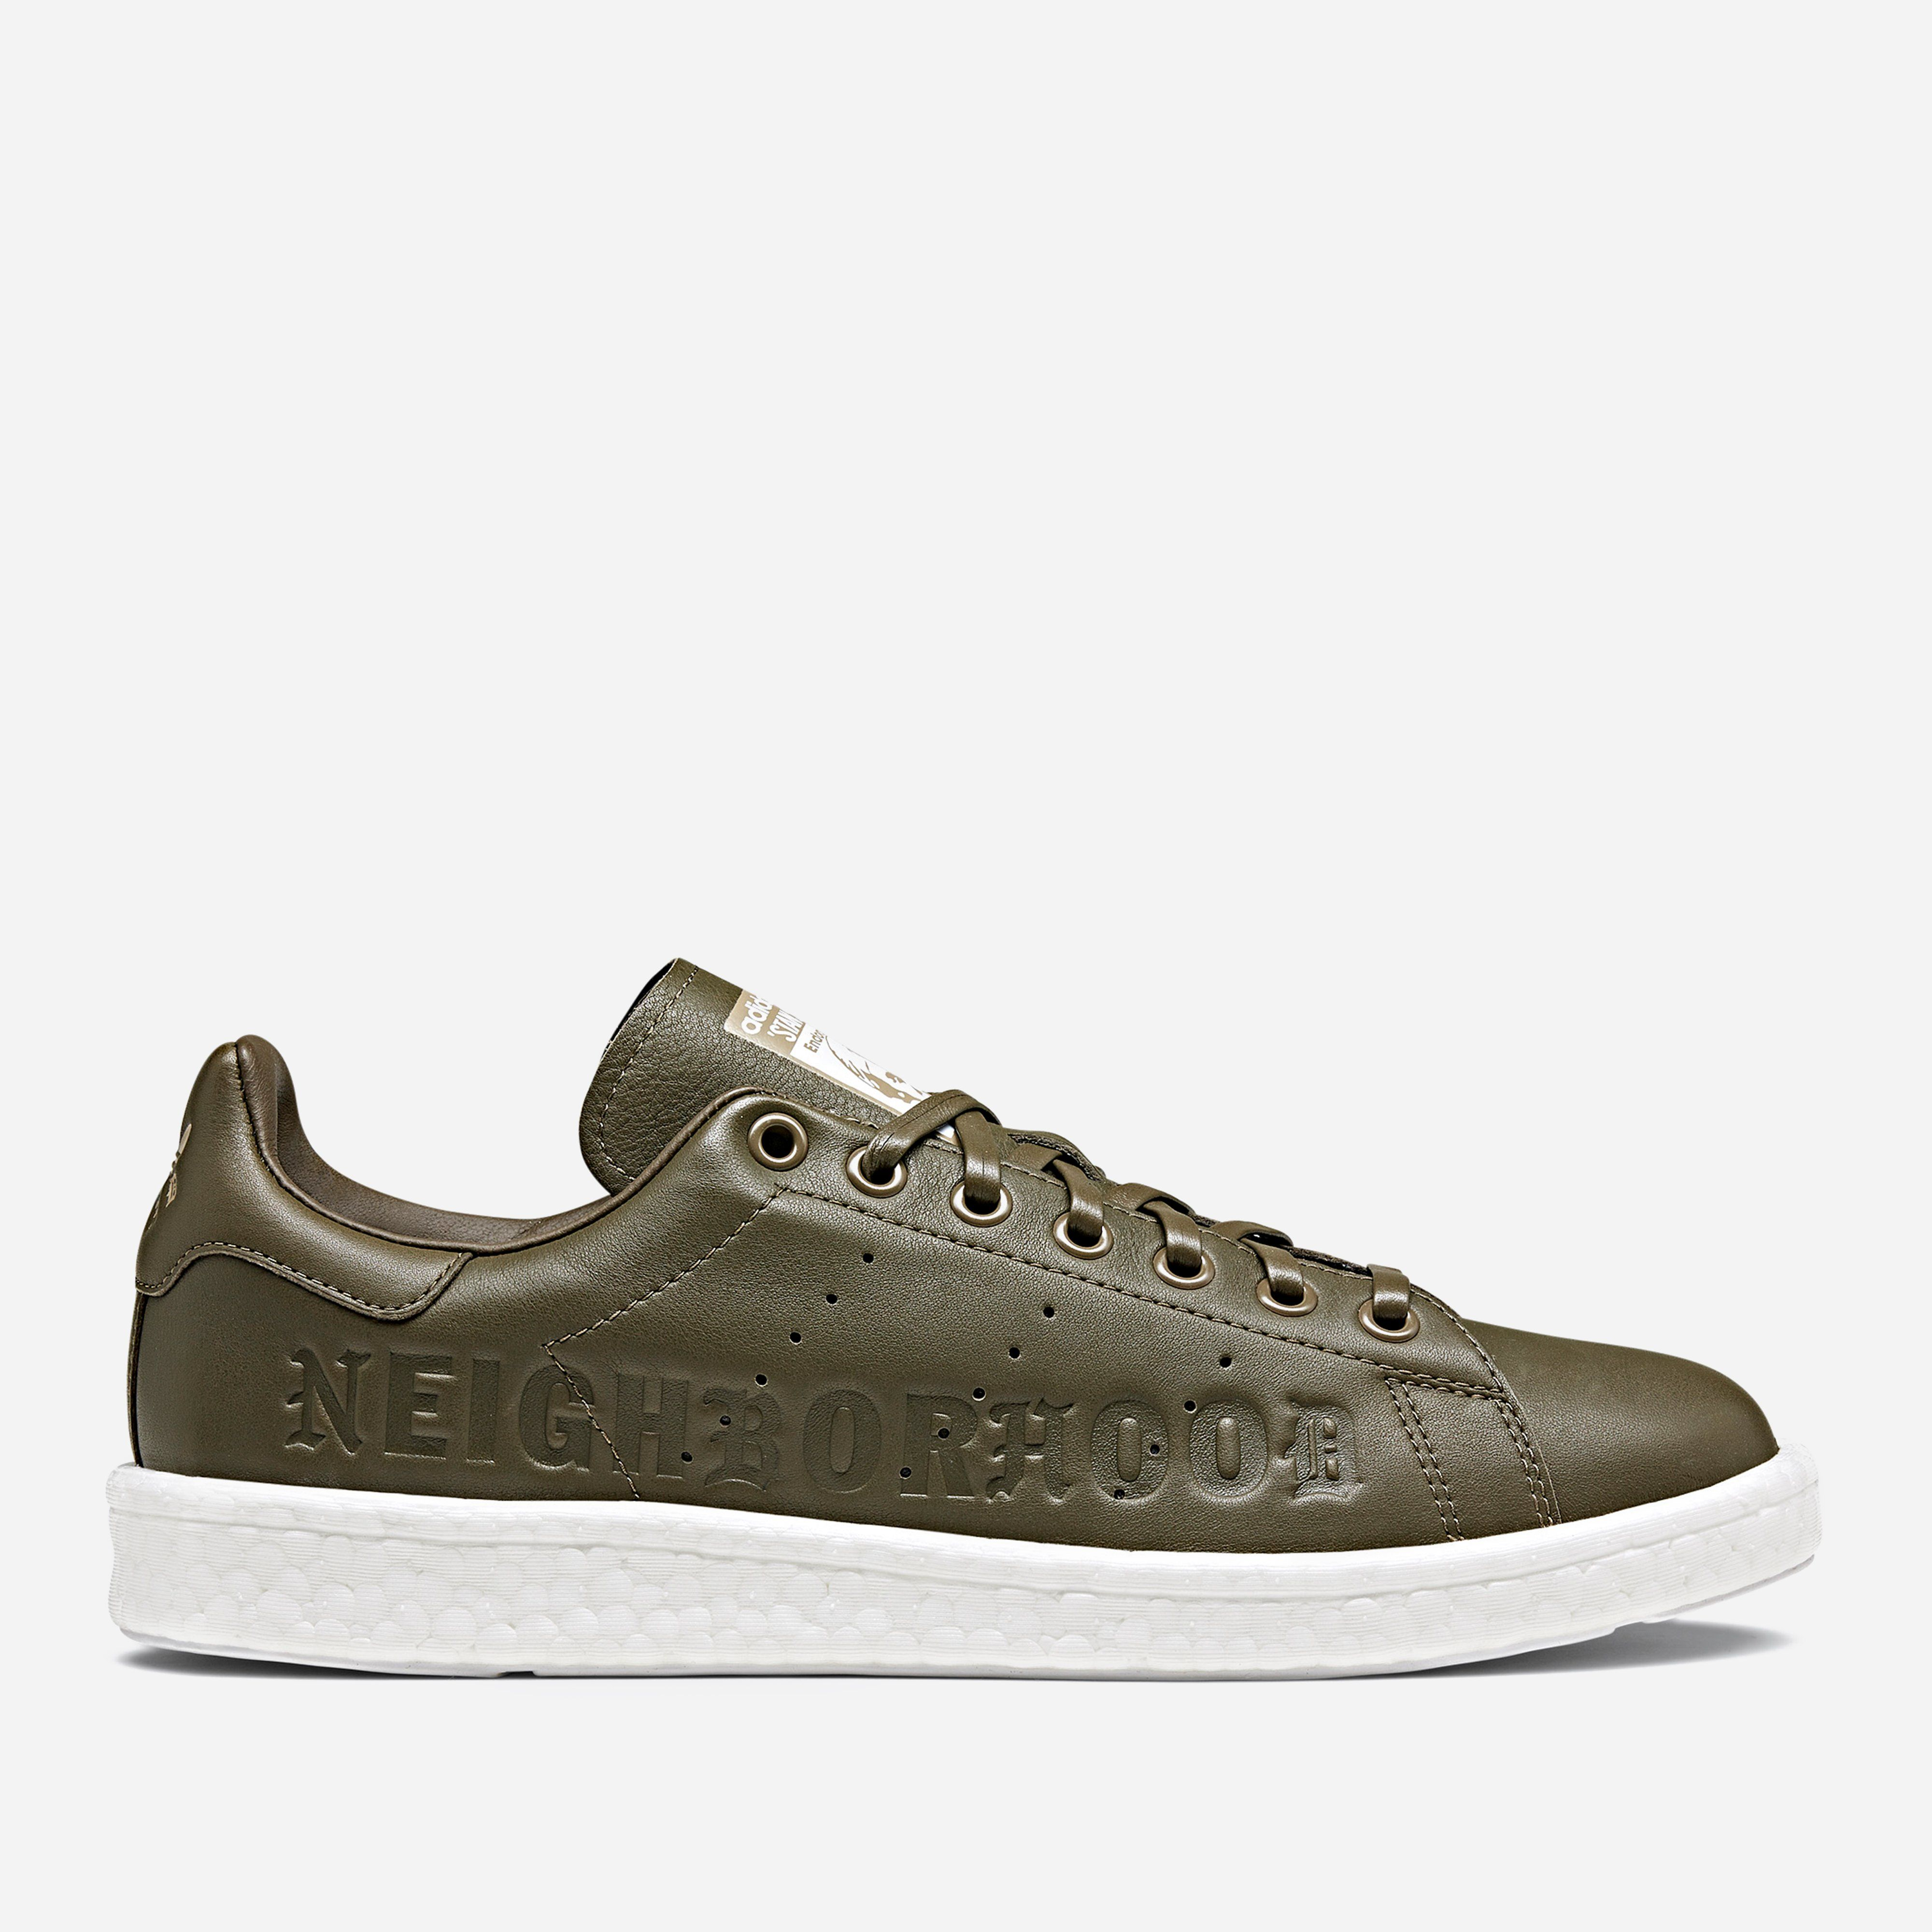 adidas Originals x Neighborhood Stan Smith Boost